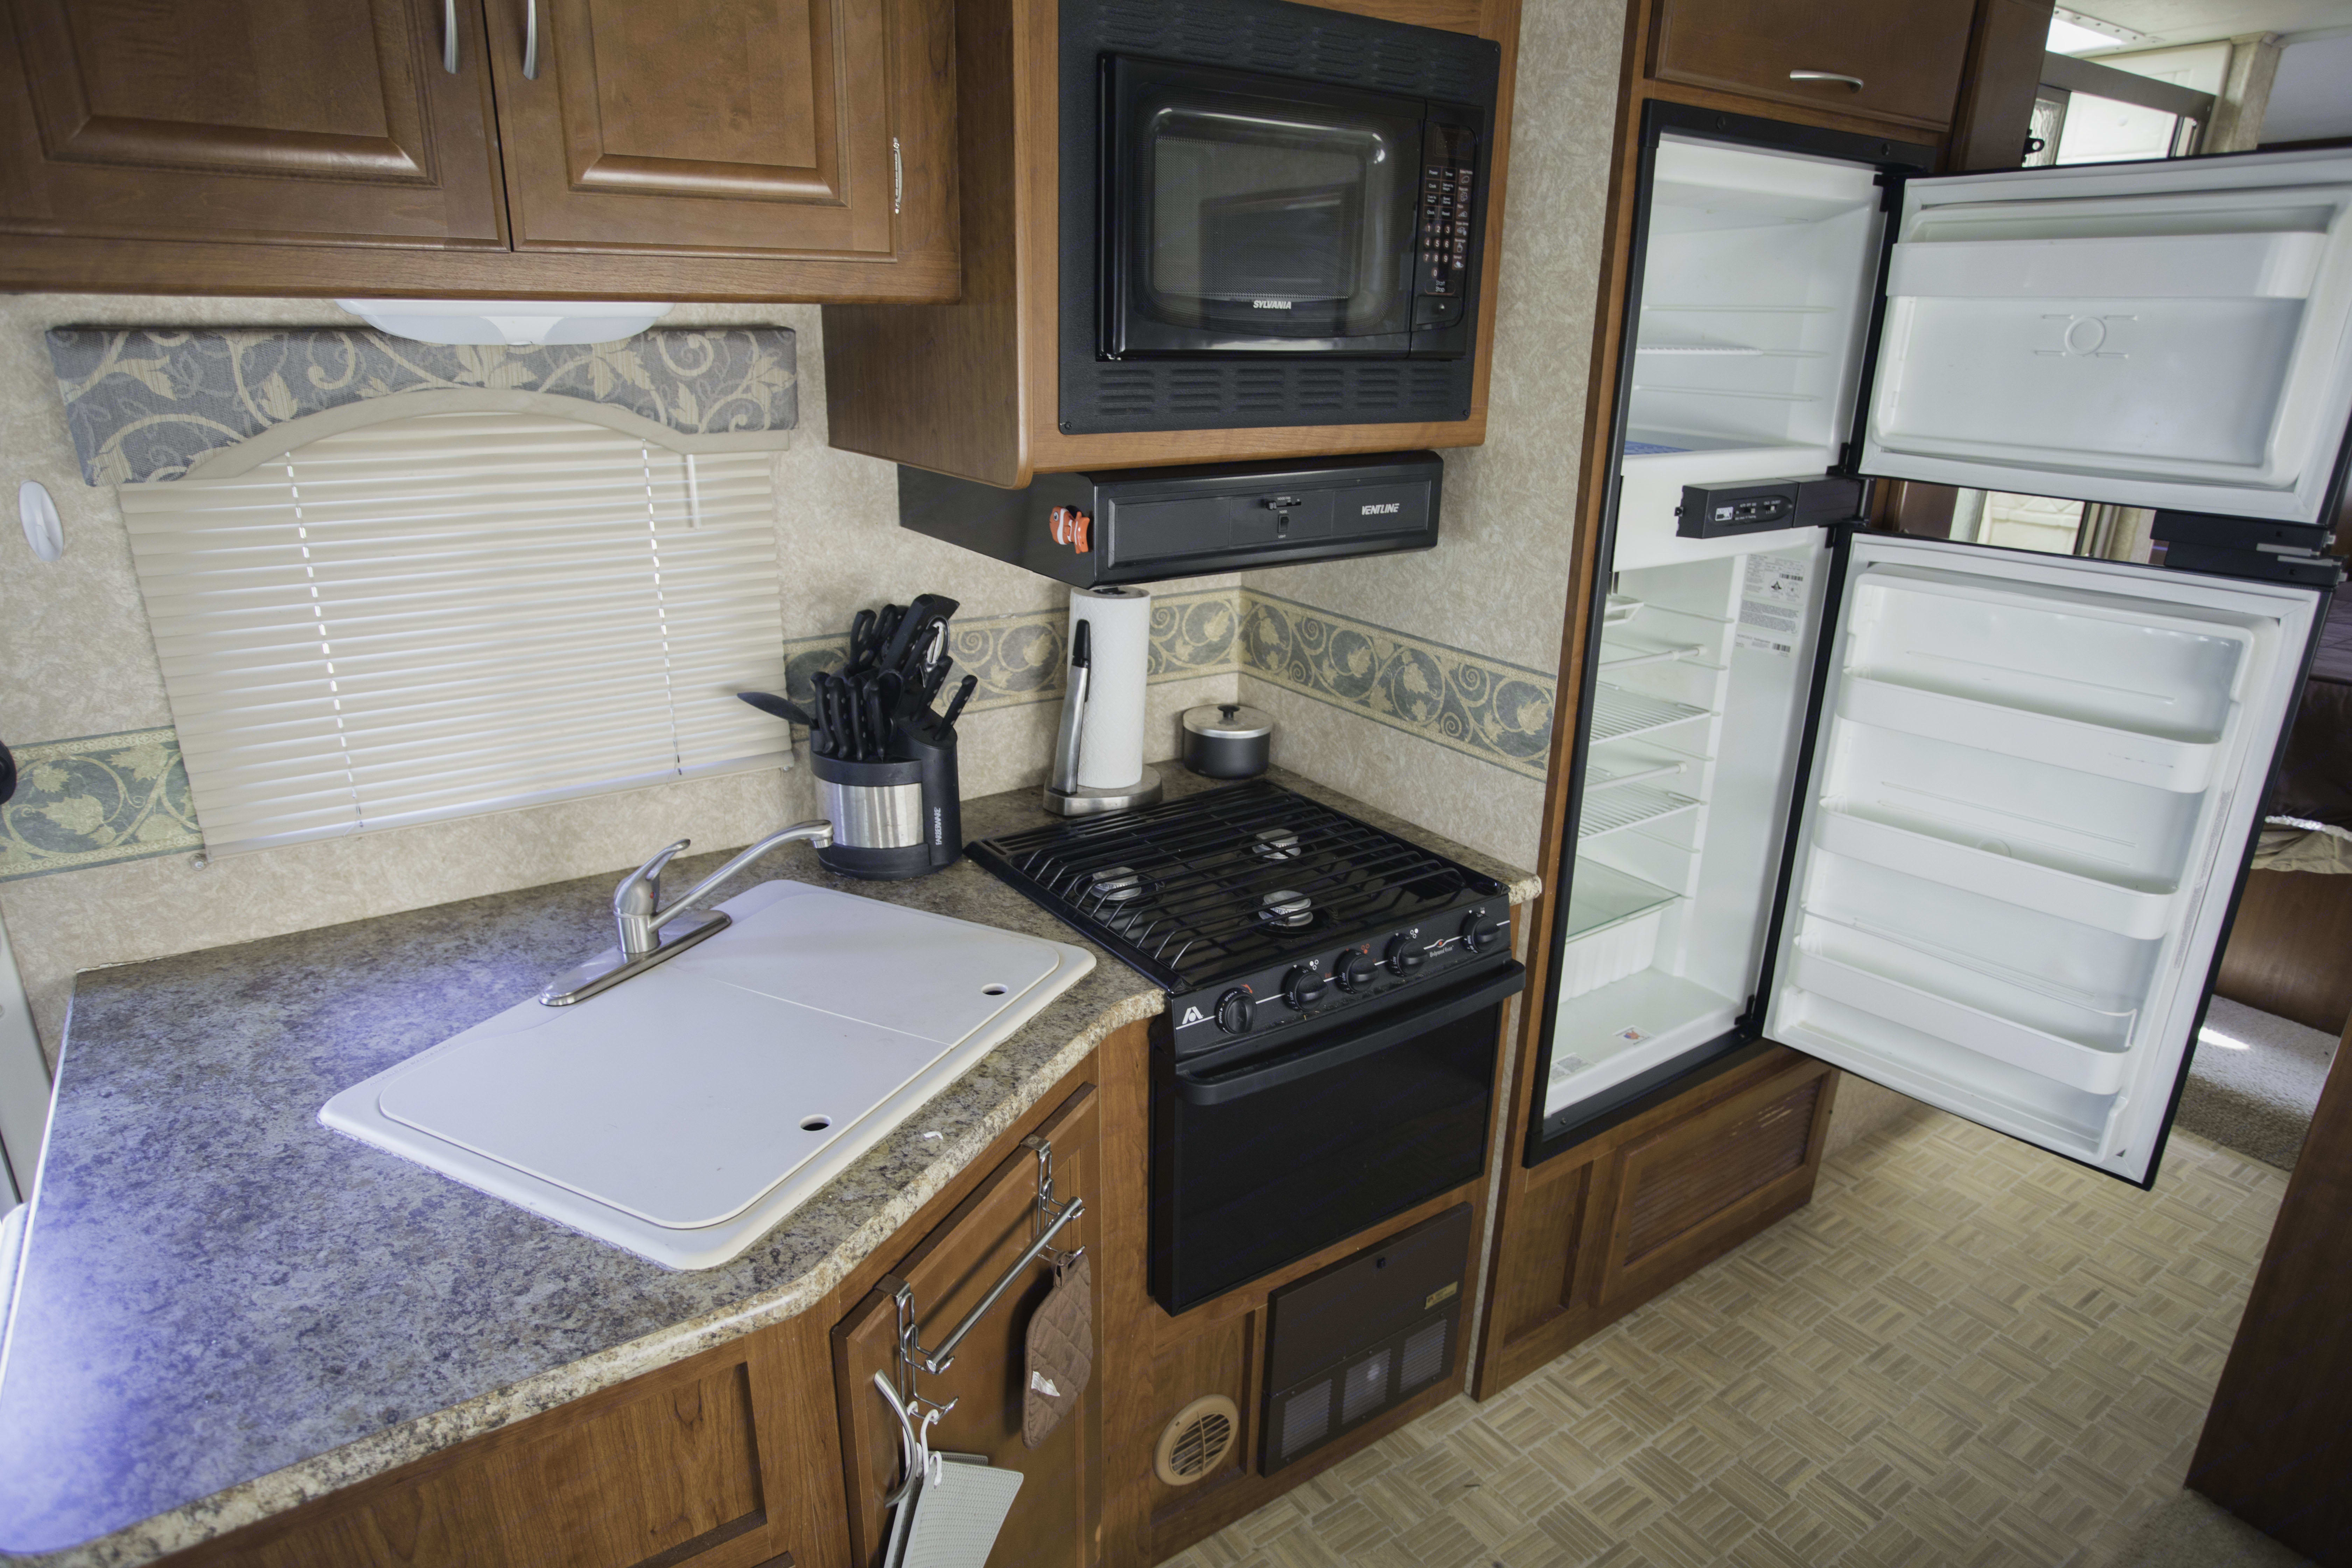 Main kitchen area showing full sized refrigerator and freezer. Microwave above stove with powered exhaust vent.  Dual sinks with hard plastic covers. The dining table is just to the right and out of view in this image.. Thor Motor Coach Four Winds 2009